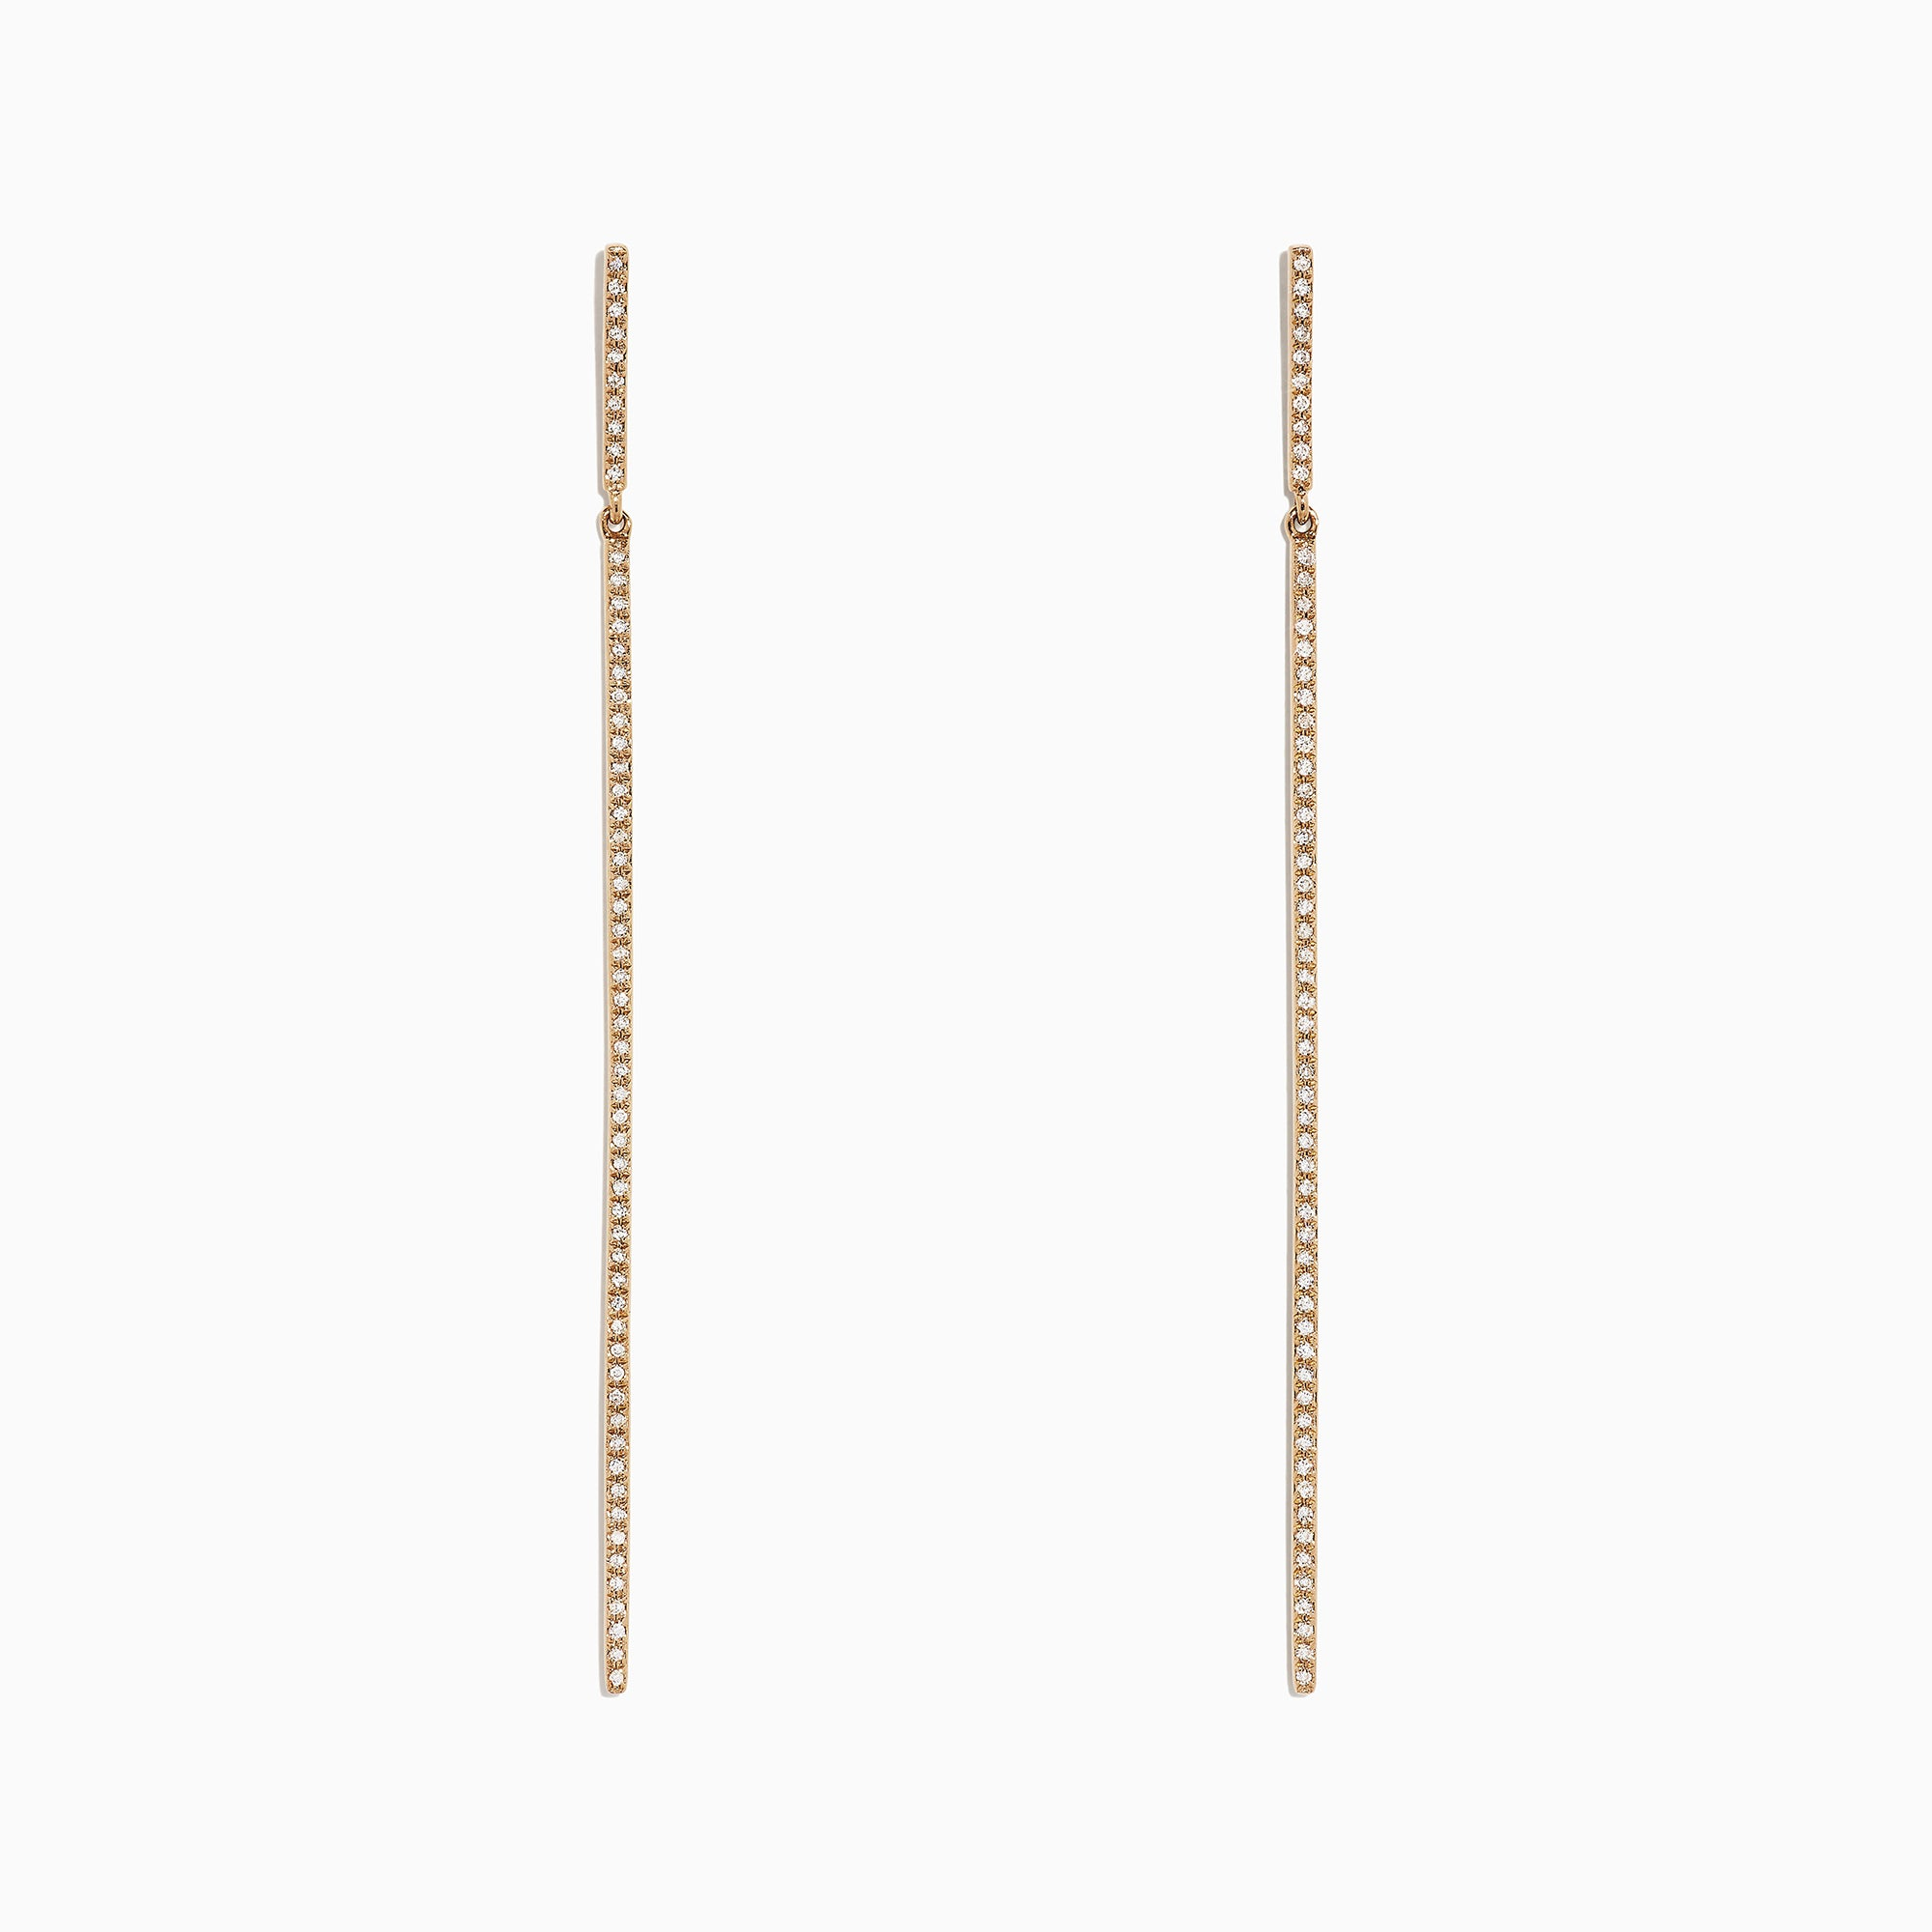 Effy D'Oro 14K Yellow Gold Diamond Vertical Earrings, 0.35 TCW